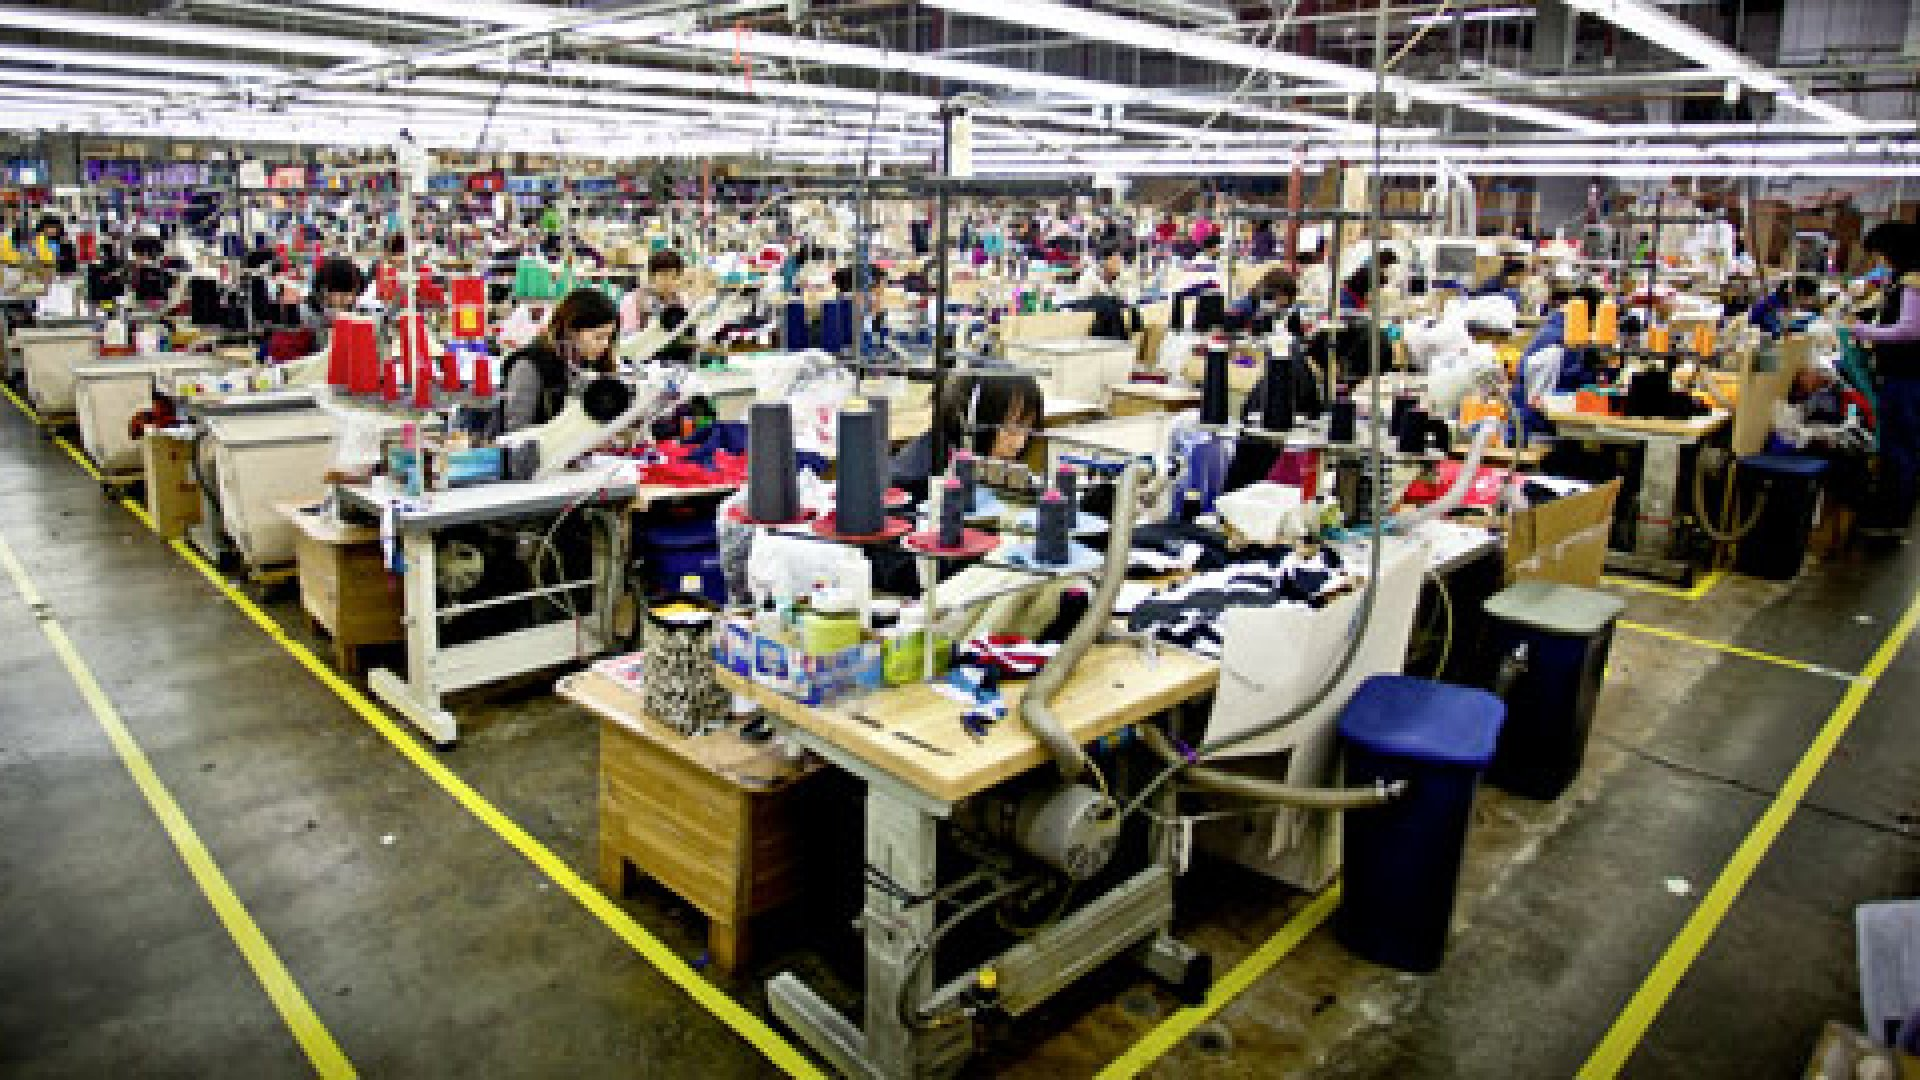 SFO Apparel in Brisbane, California is the exclusive manufacturer for American Giant.